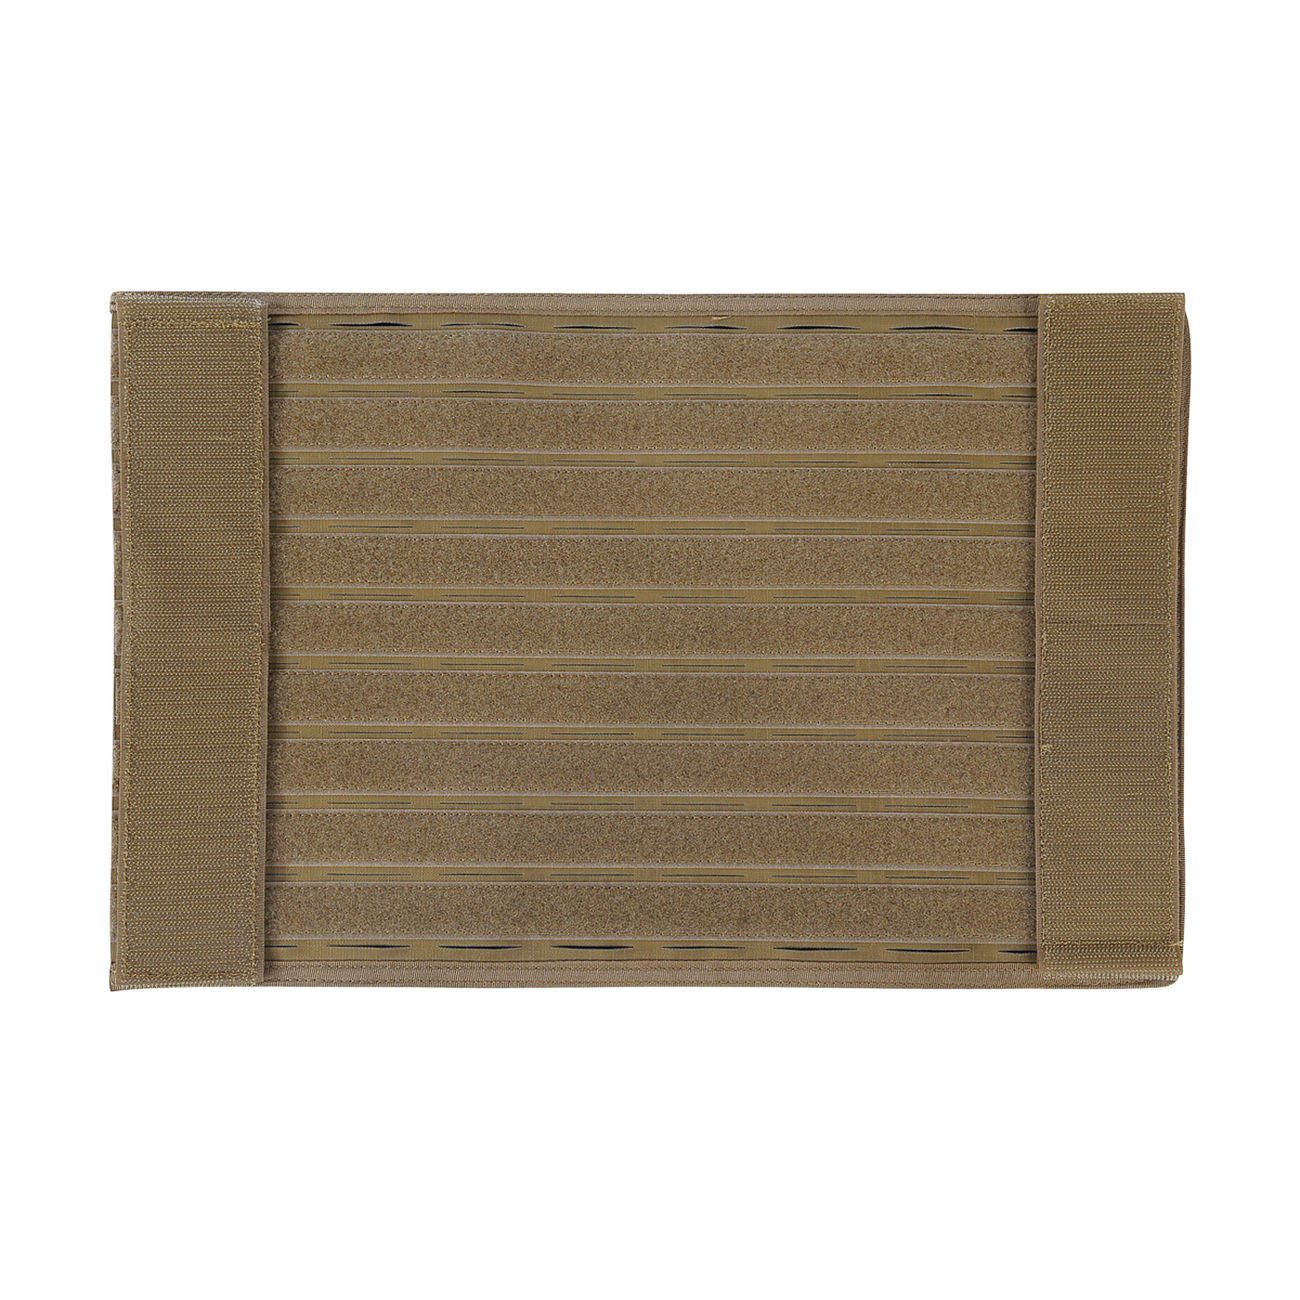 TT Modular Molle Panel coyote brown 1